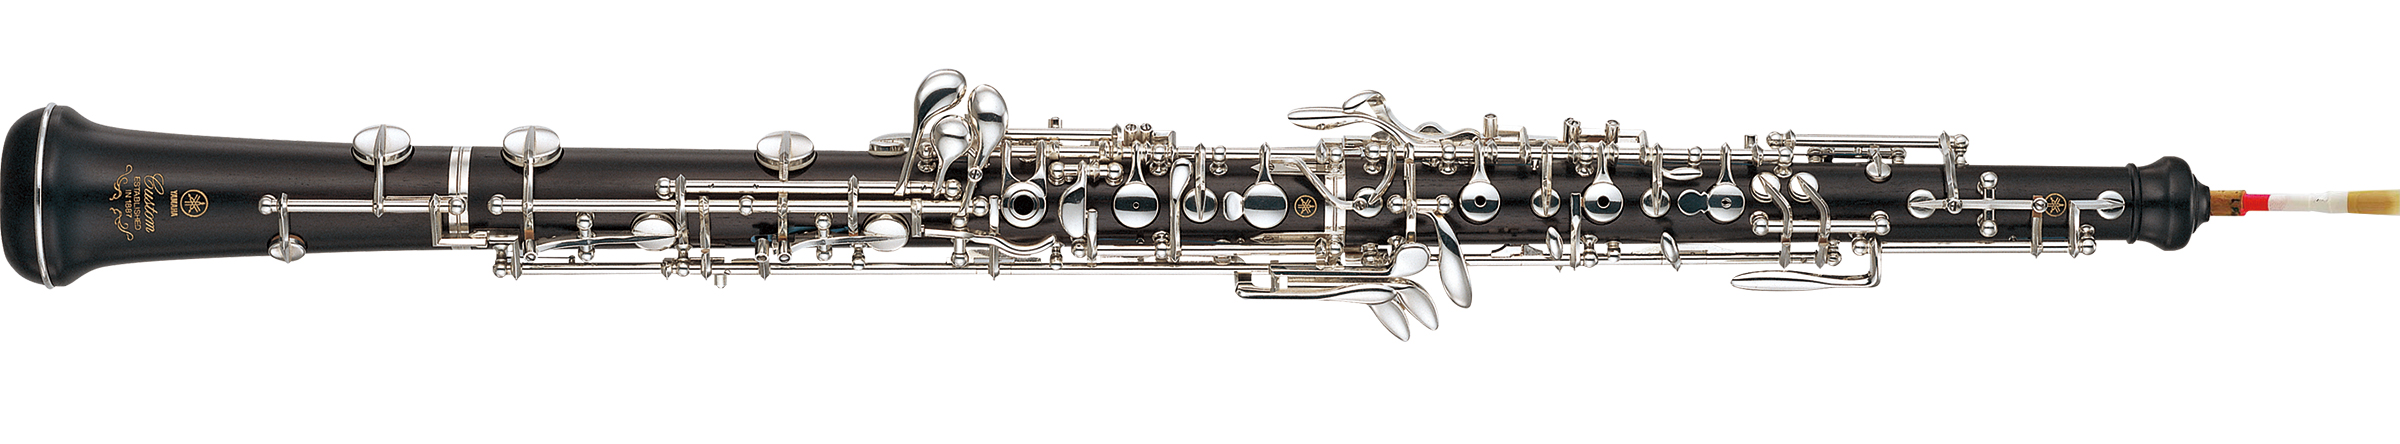 The entire display of the oboe